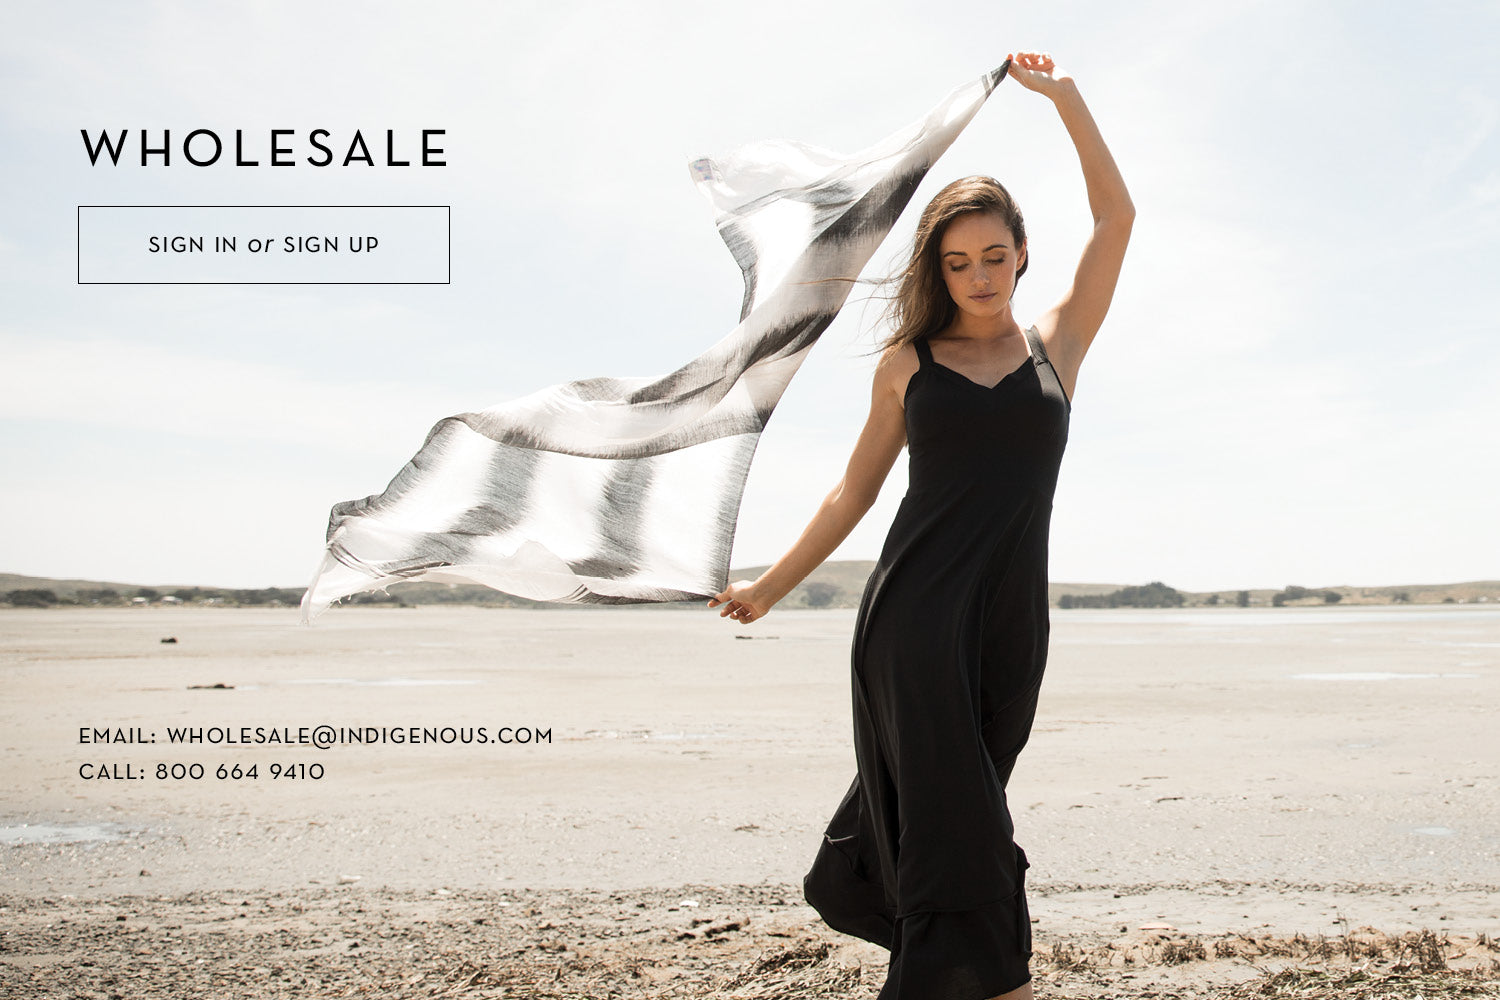 Sustainable Fashion - Indigenous Wholesale